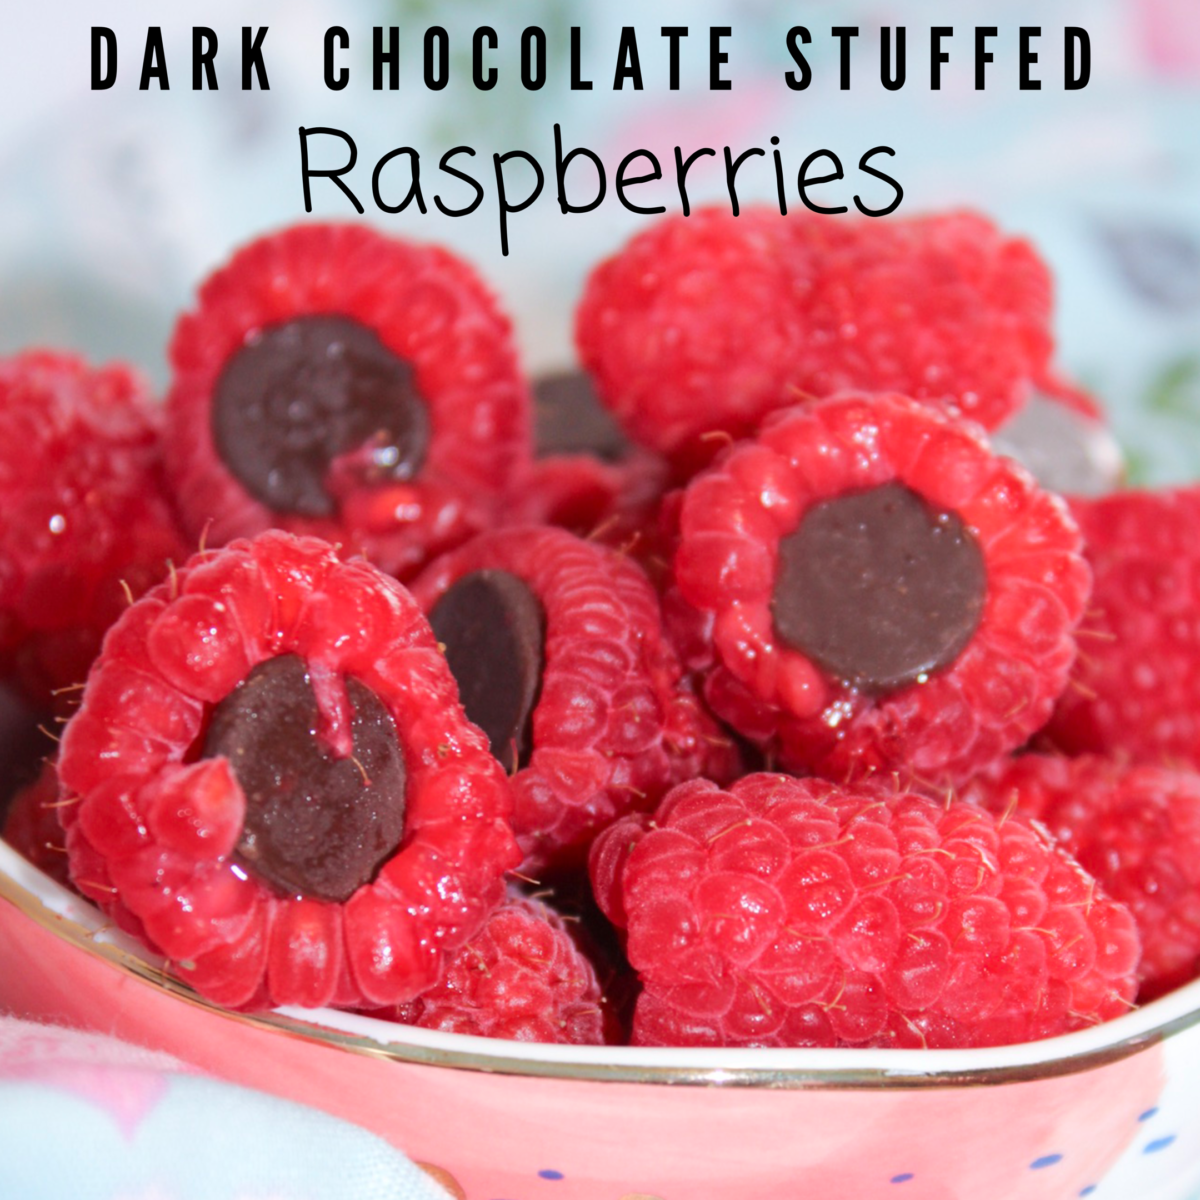 DARK CHOCOLATE STUFFED RASPBERRIES